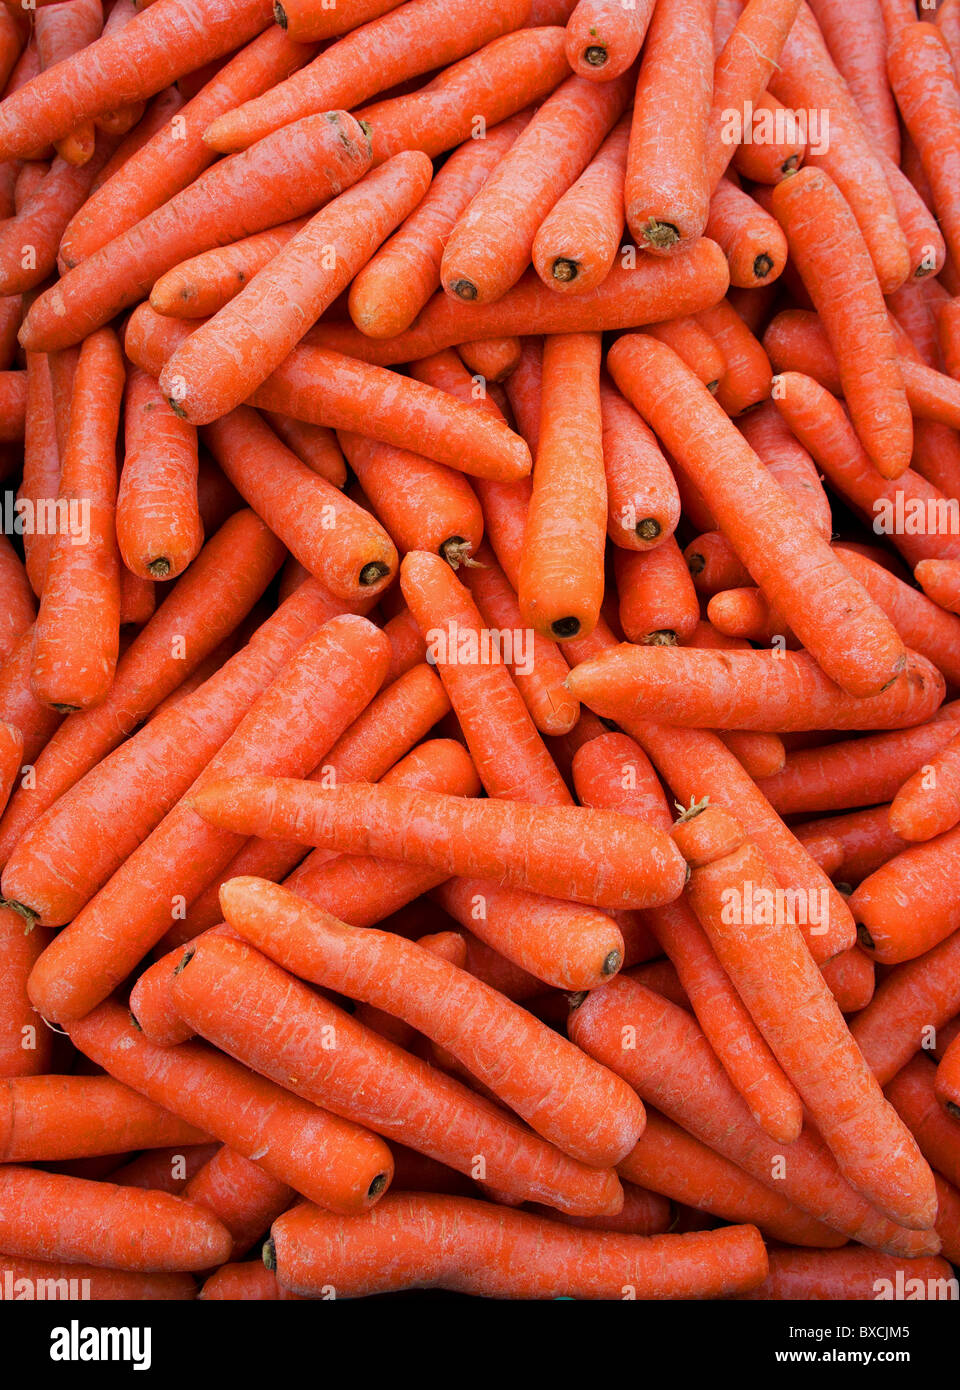 fresh carrots for sale on a market stall, uk - Stock Image